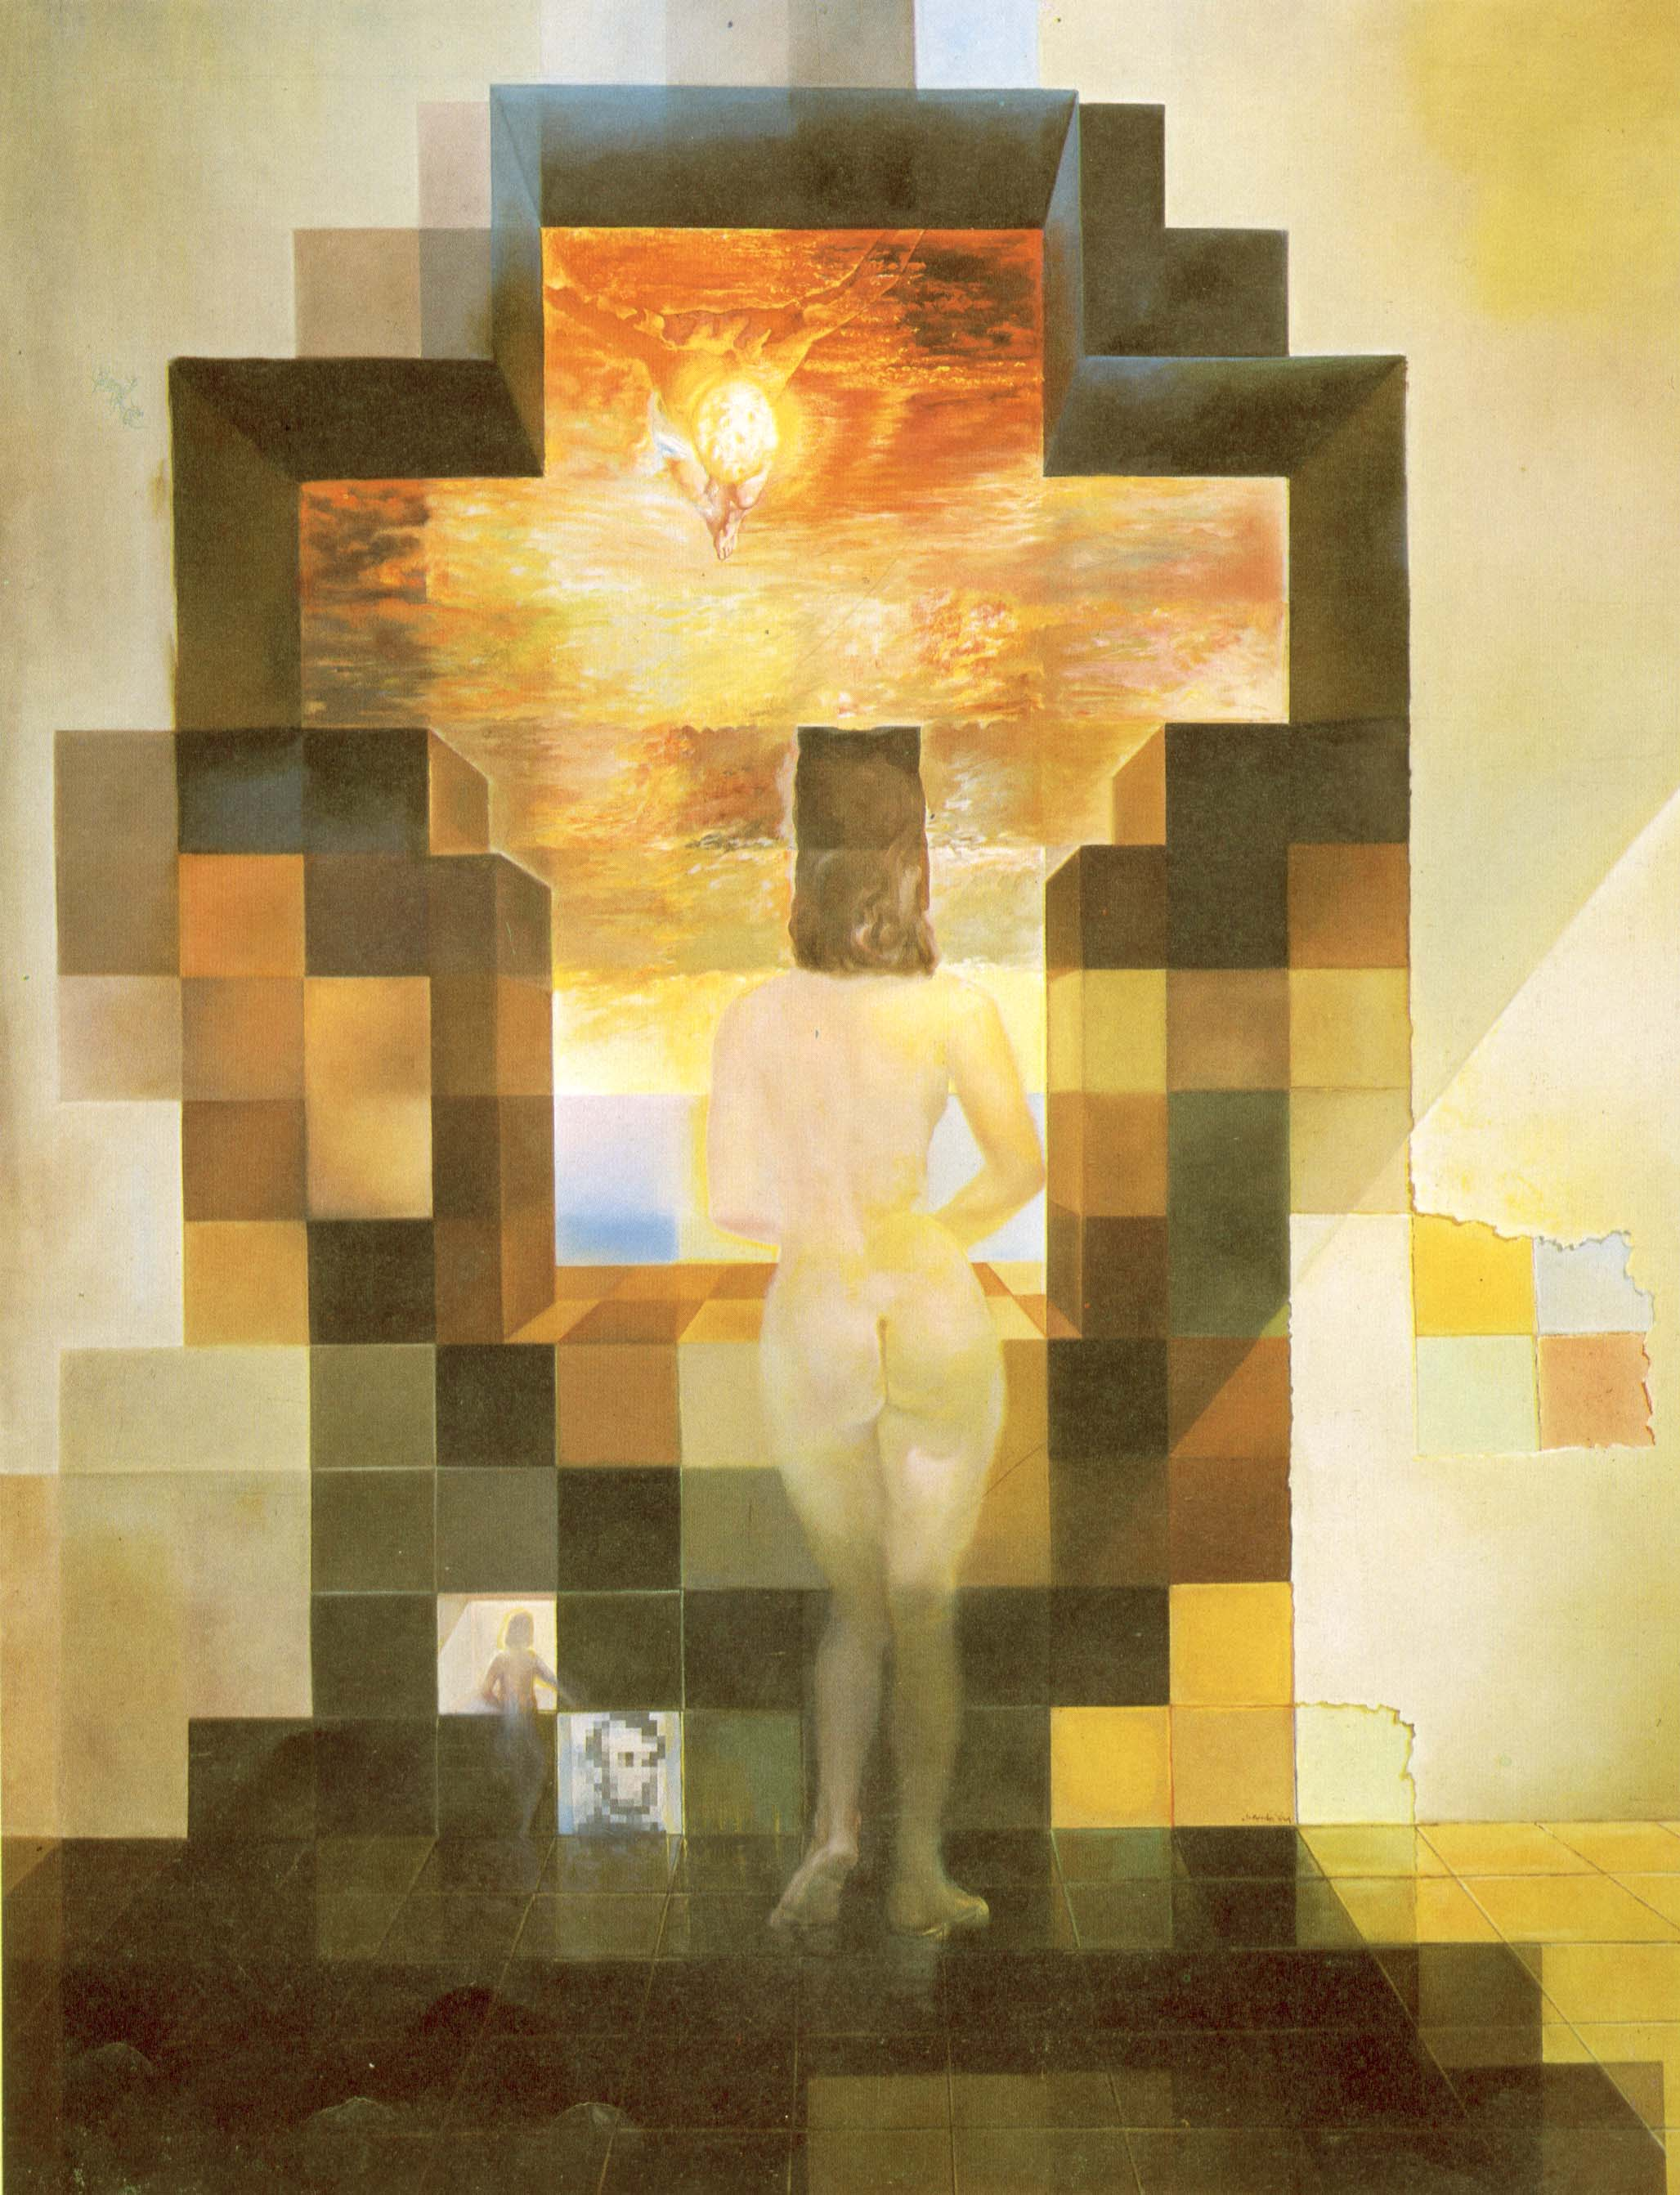 The Body Of Christ: The Church edition 2013 isbn: 978 1 84730 282 3